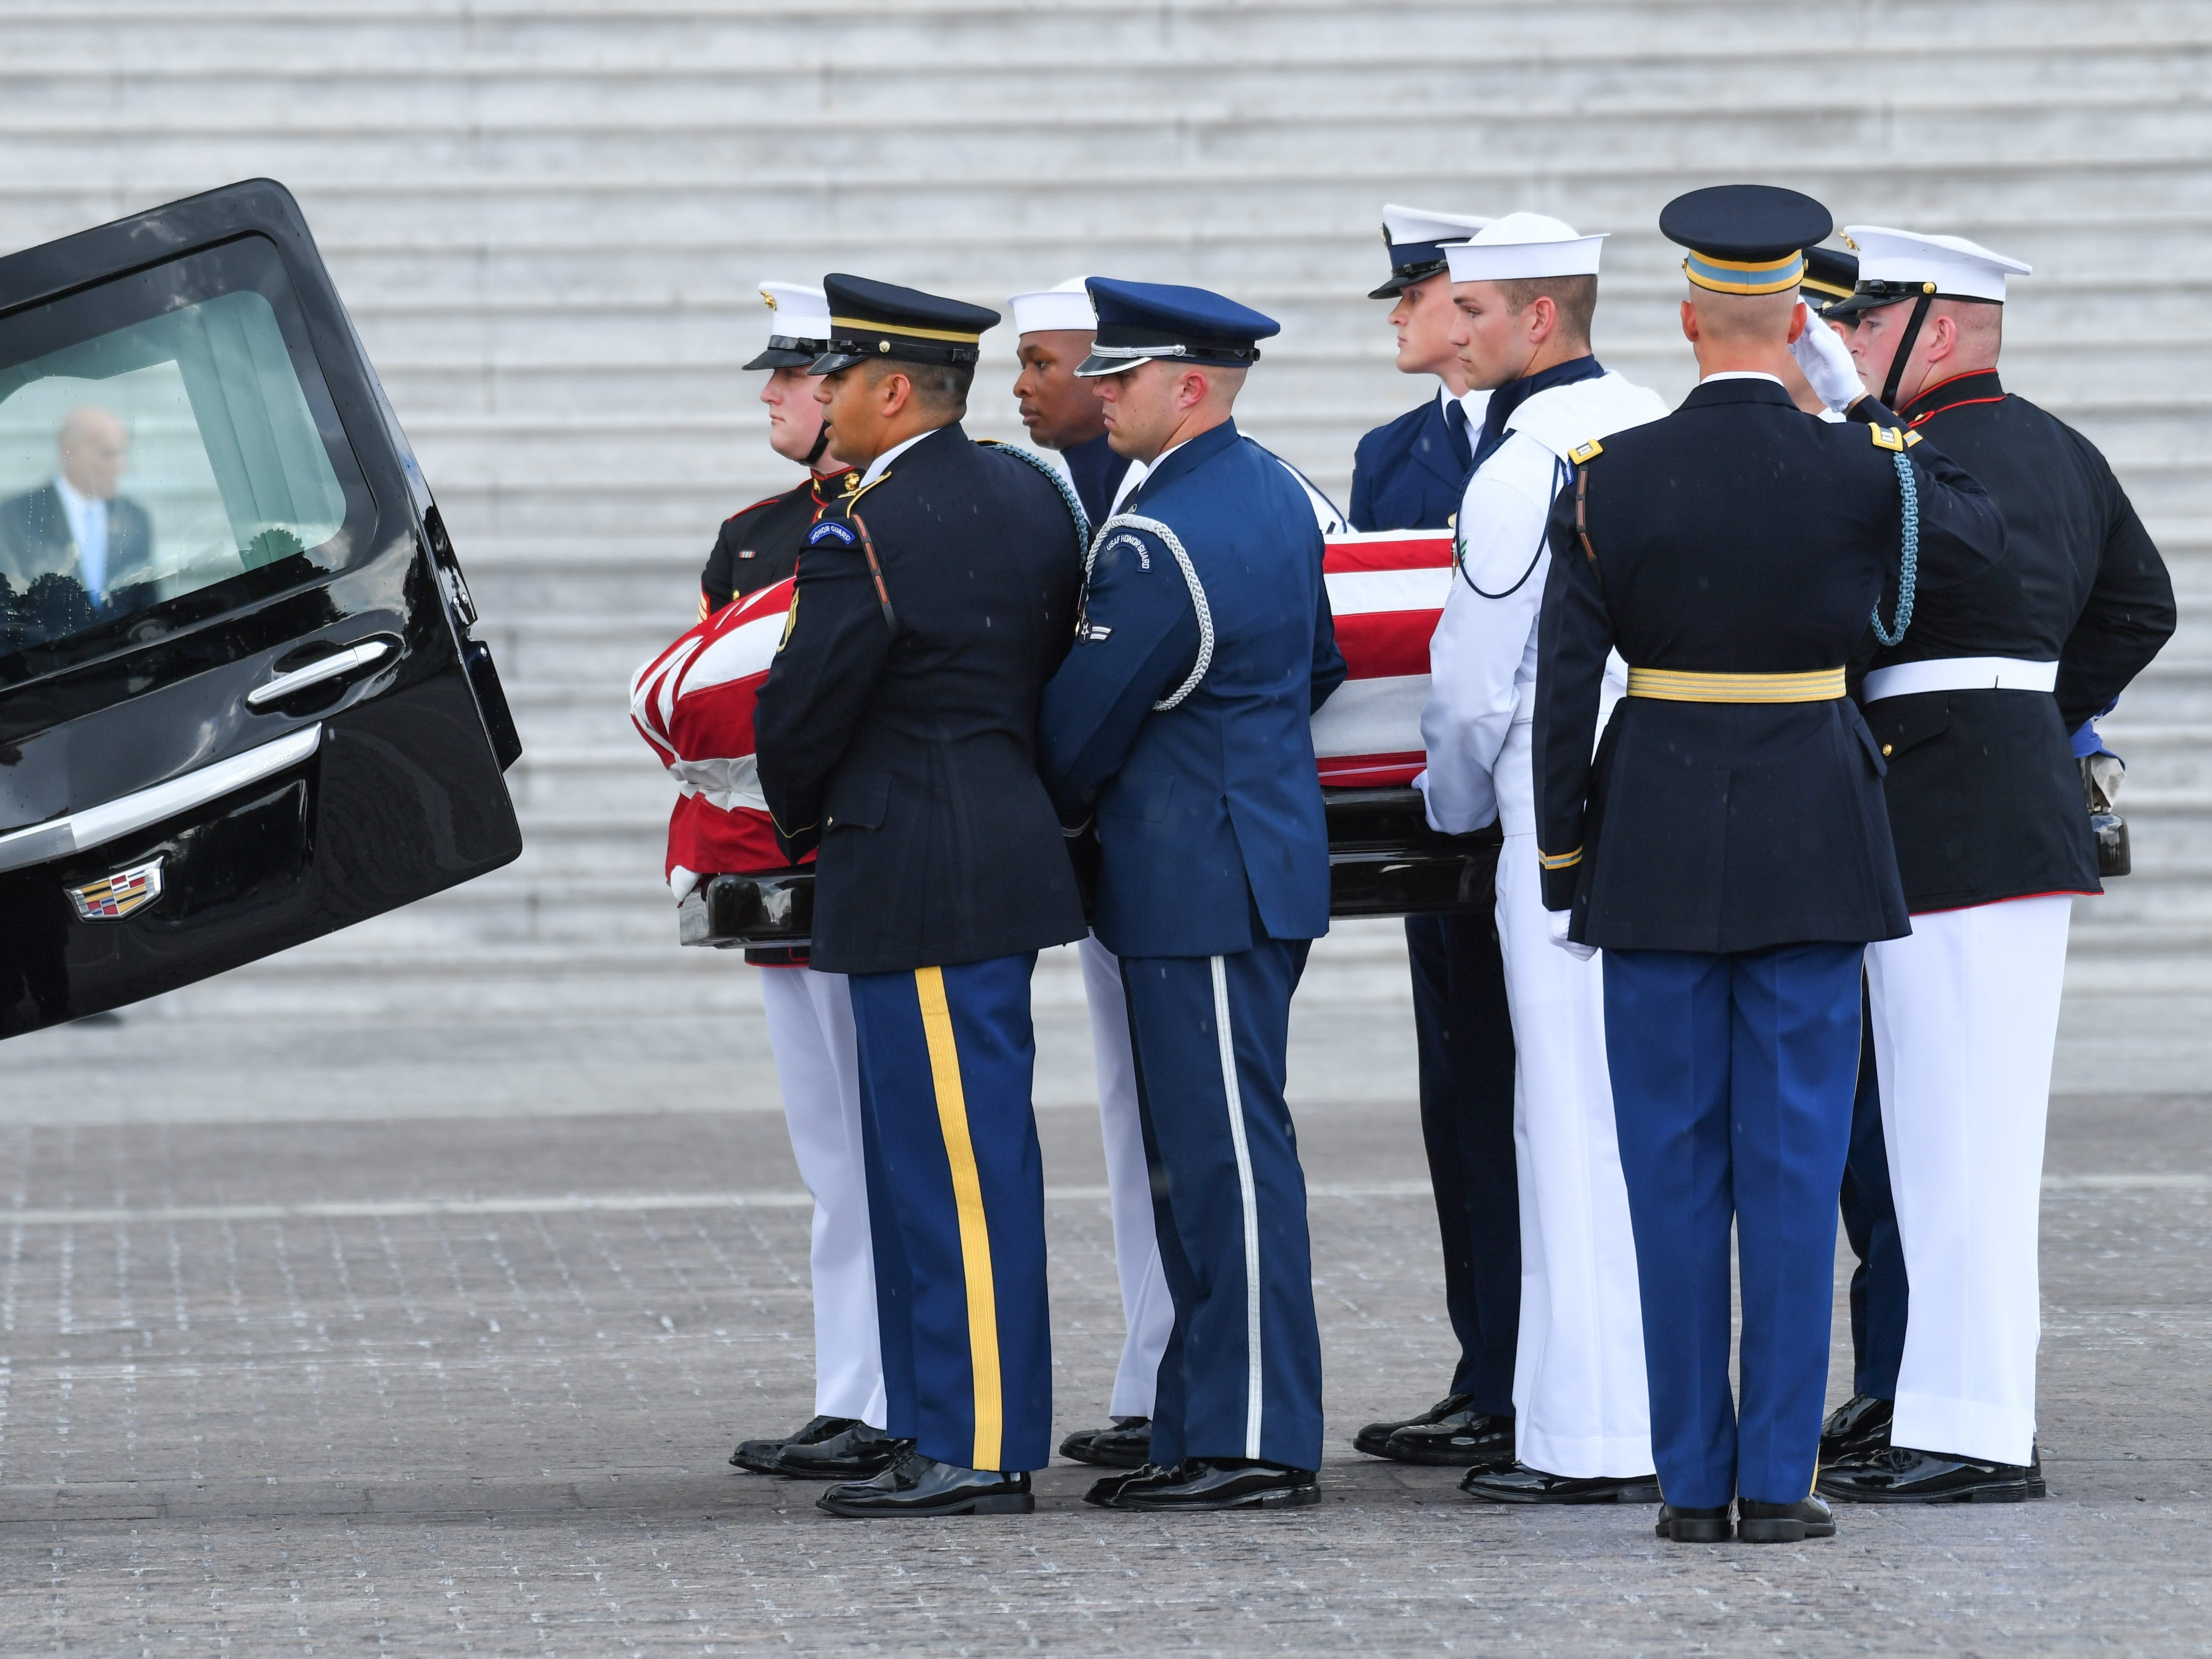 The body of John McCain arrives at the U.S. Capitol before lying in state at the U.S. Capitol in Washington on Aug. 31, 2018 in Washington. Sen. McCain died on Aug. 25. --    Photo by Jack Gruber, USA TODAY Staff ORG XMIT:  JG 137435 McCain U.S. Capi 8/31 (Via OlyDrop)